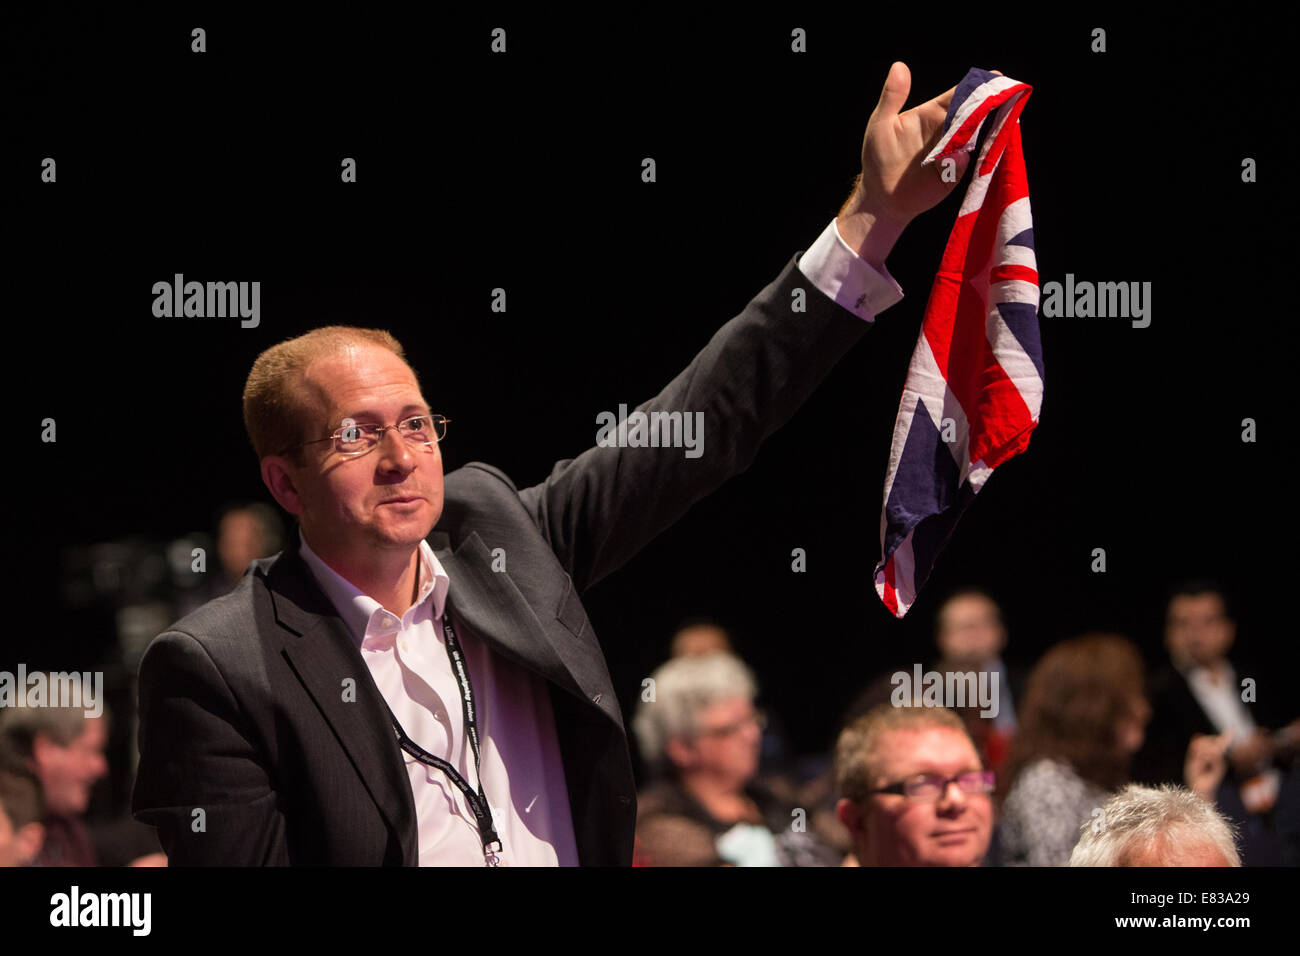 Patriotic delegate,holding up a Union Jack, tries to ask a question at the Labour party conference conference - Stock Image